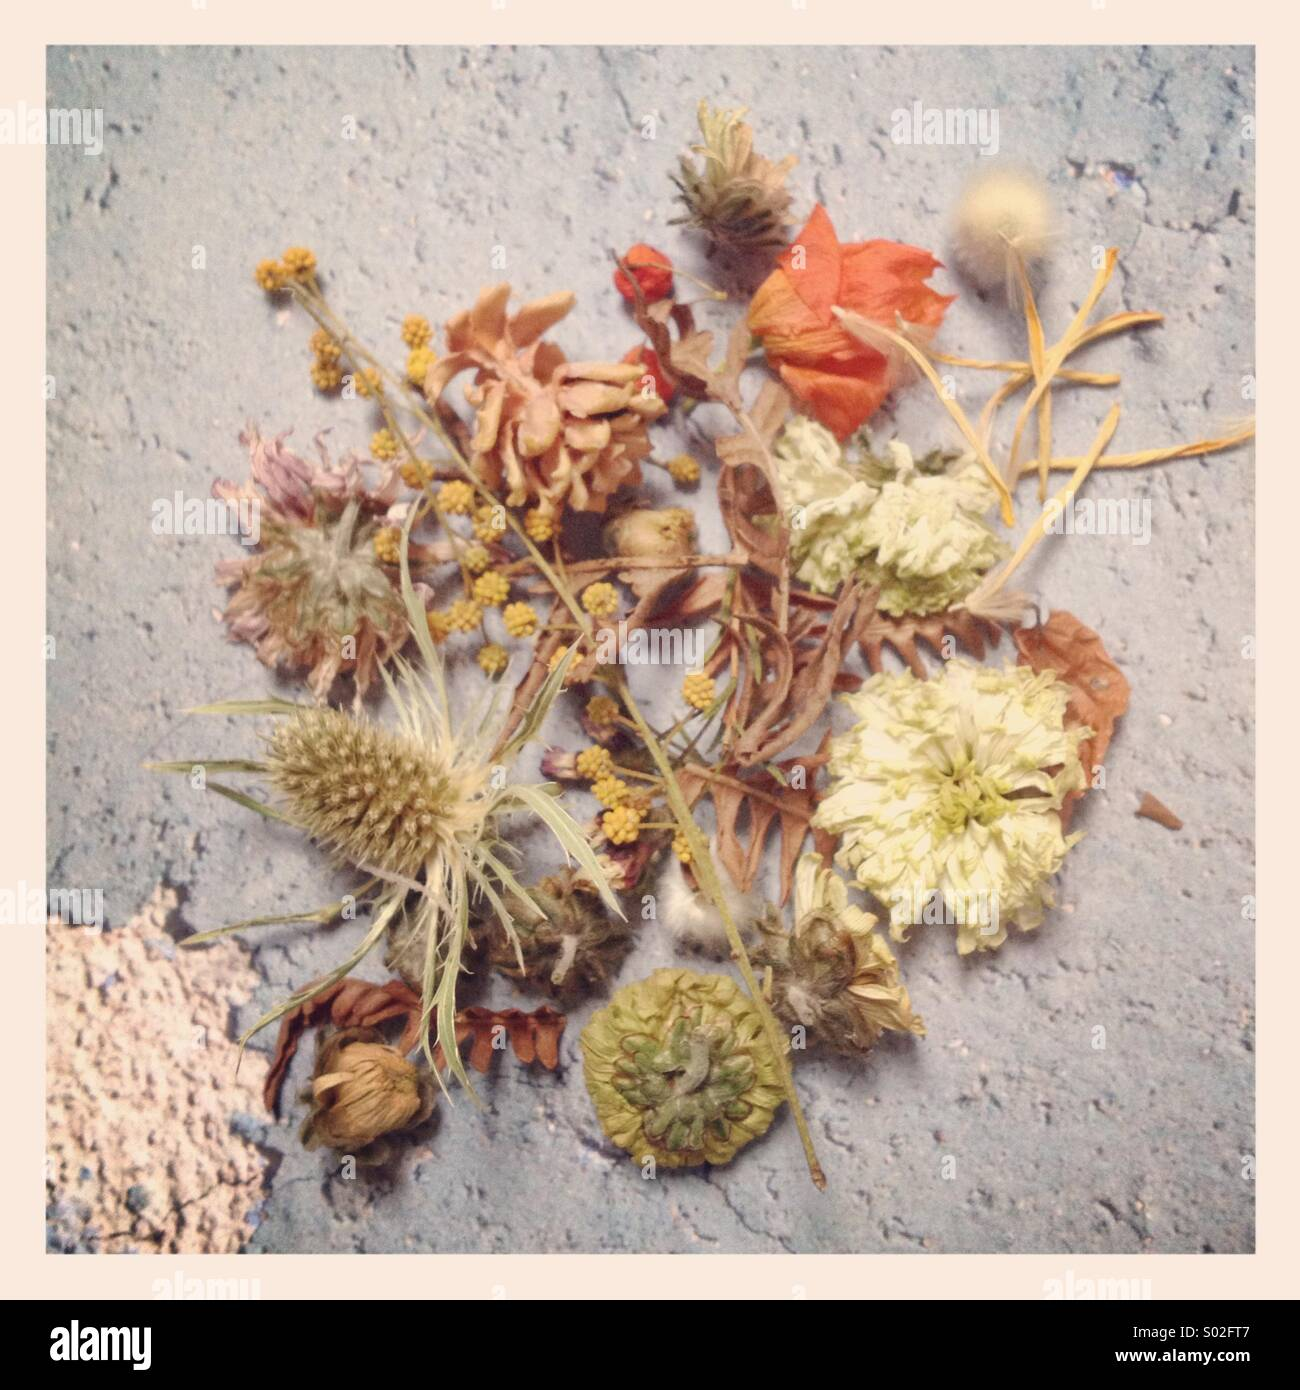 Dried and decaying flowers - Stock Image